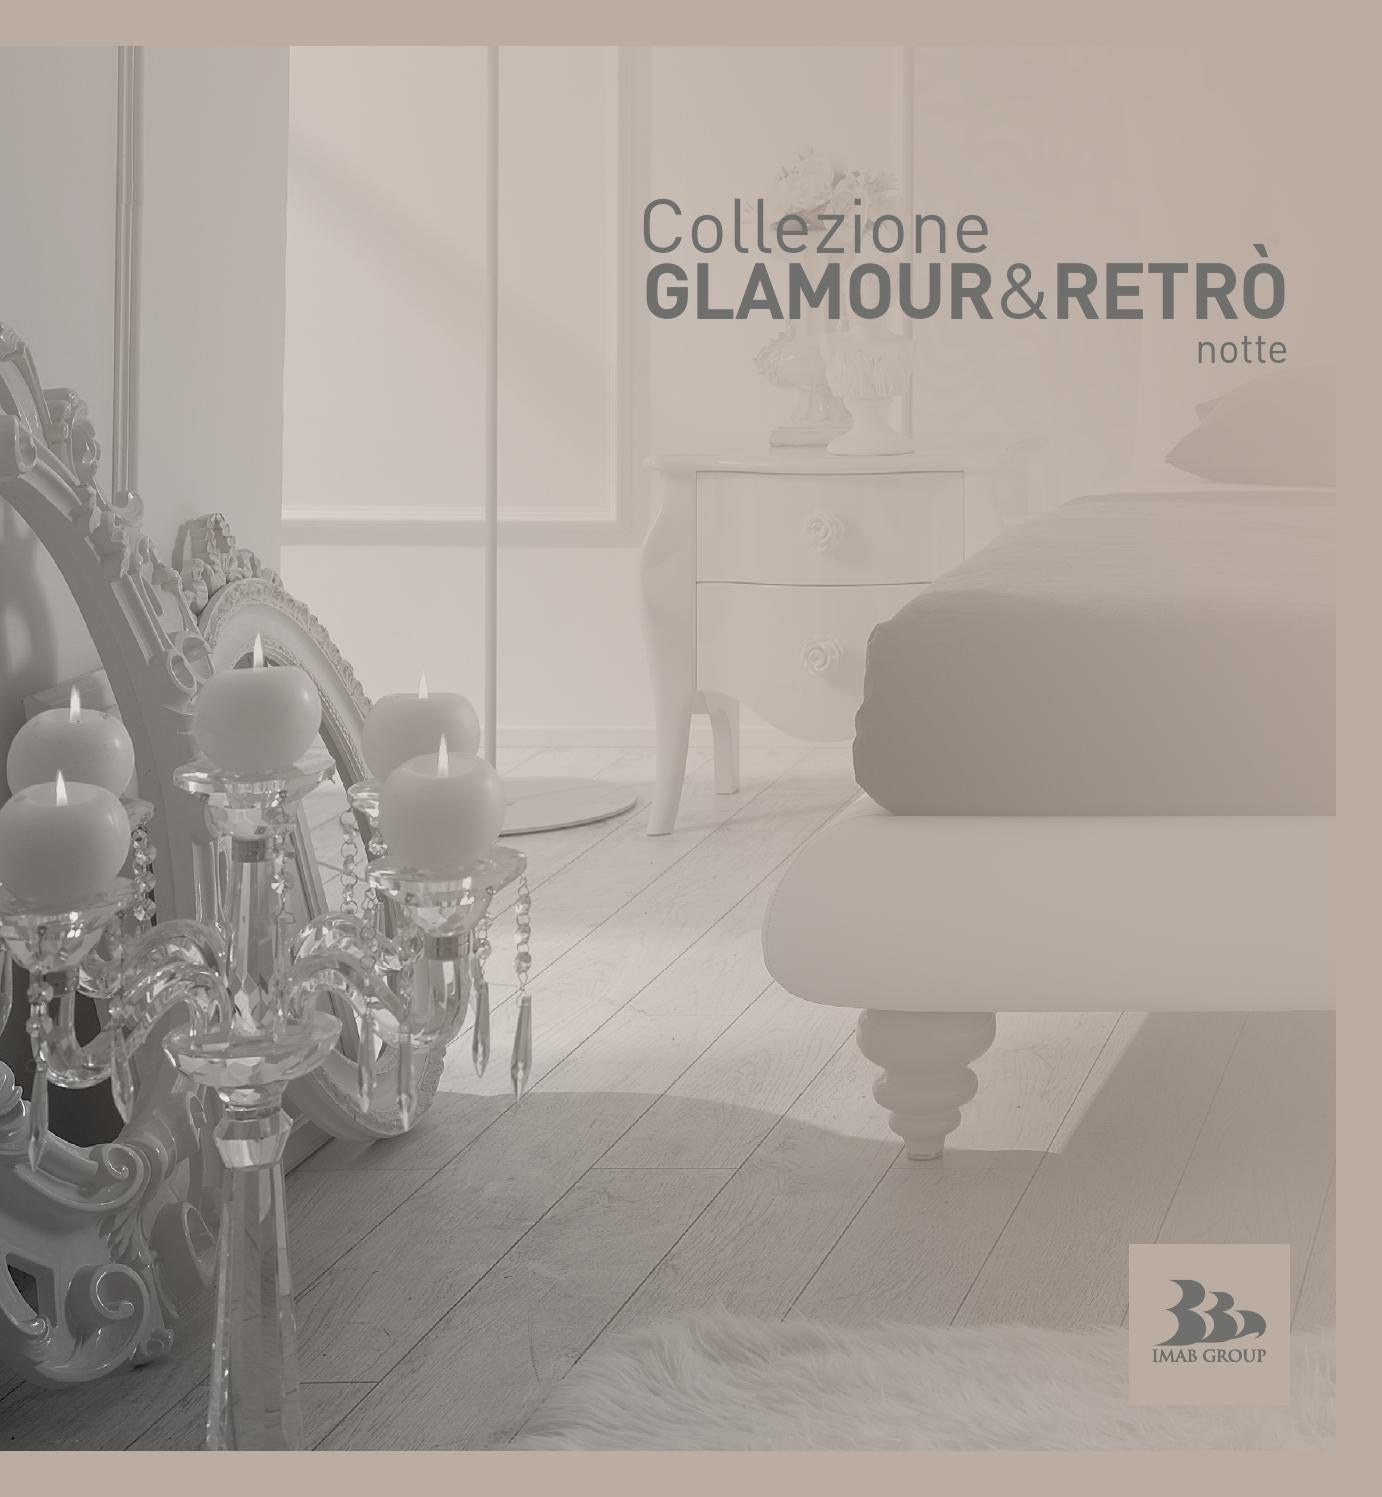 Catalogo glamour e retro by Mobilpro - issuu